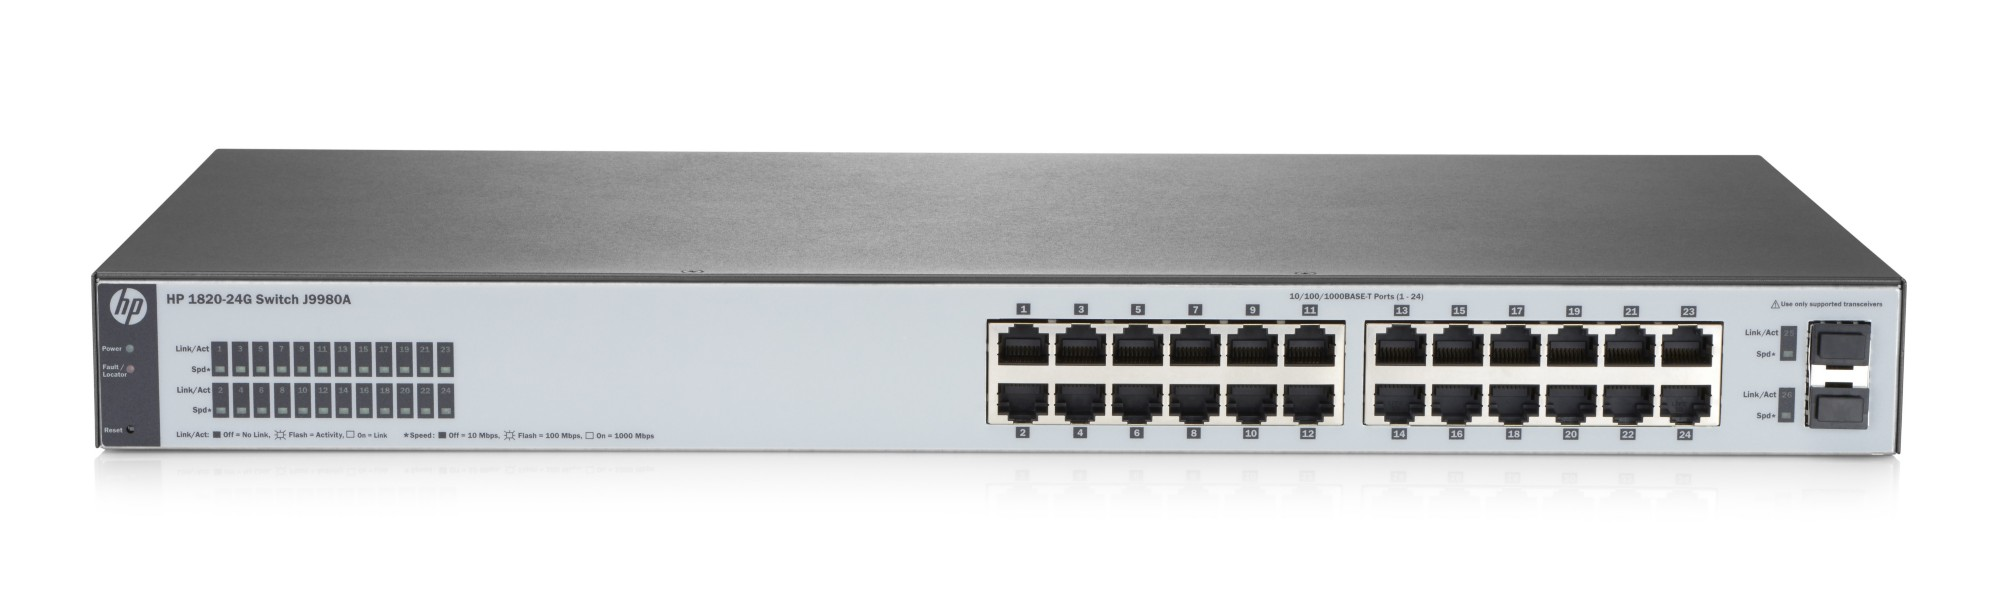 HPE J9980A 1820-24G MANAGED NETWORK SWITCH L2 GIGABIT ETHERNET (10/100/1000) 1U GREY